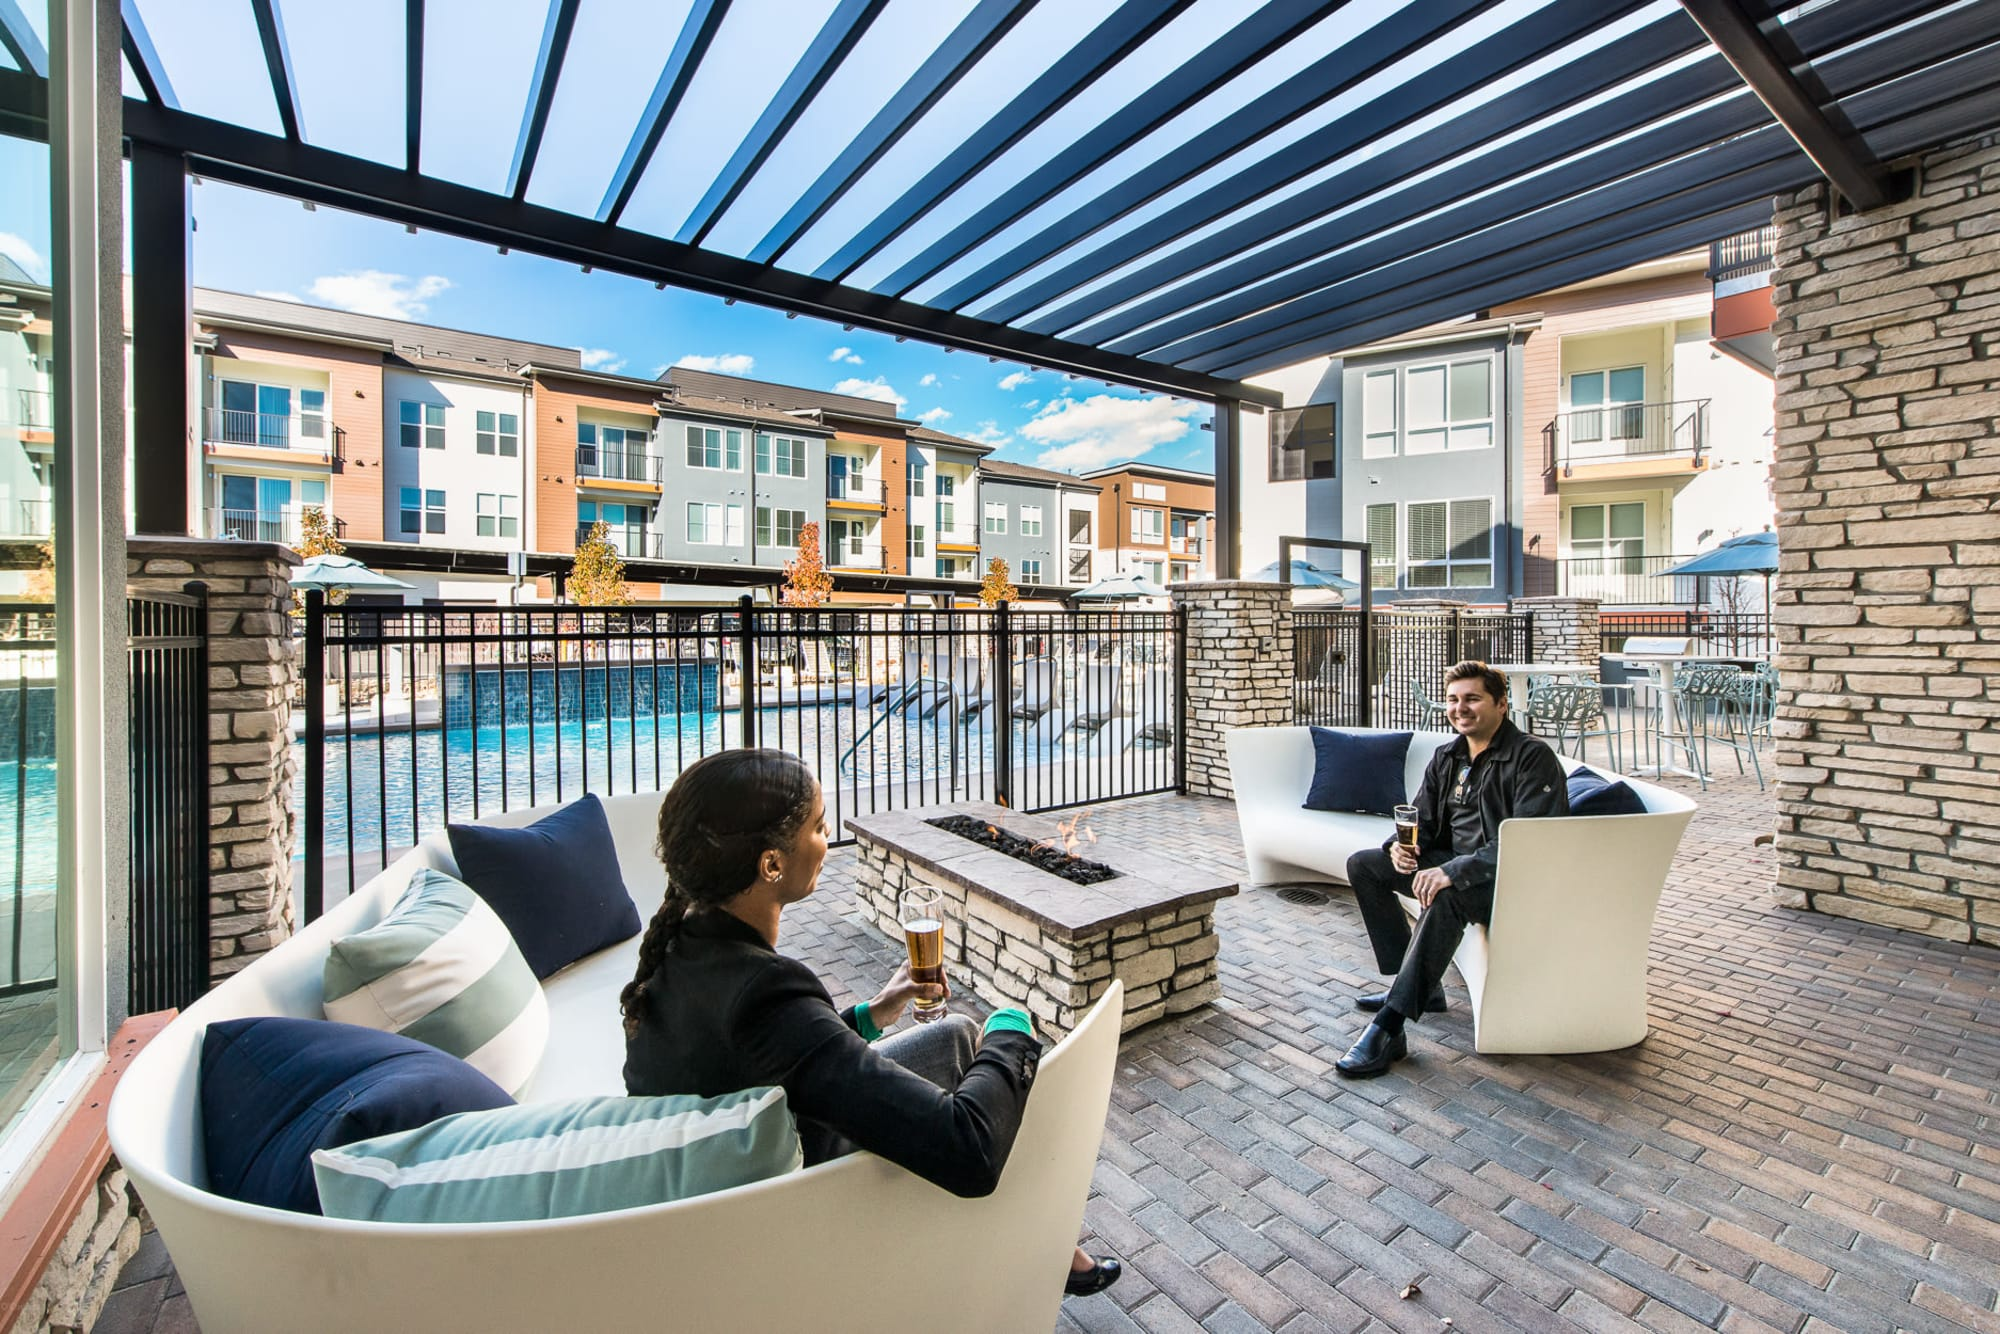 Lounge area by the pool at Elevate in Englewood, Colorado